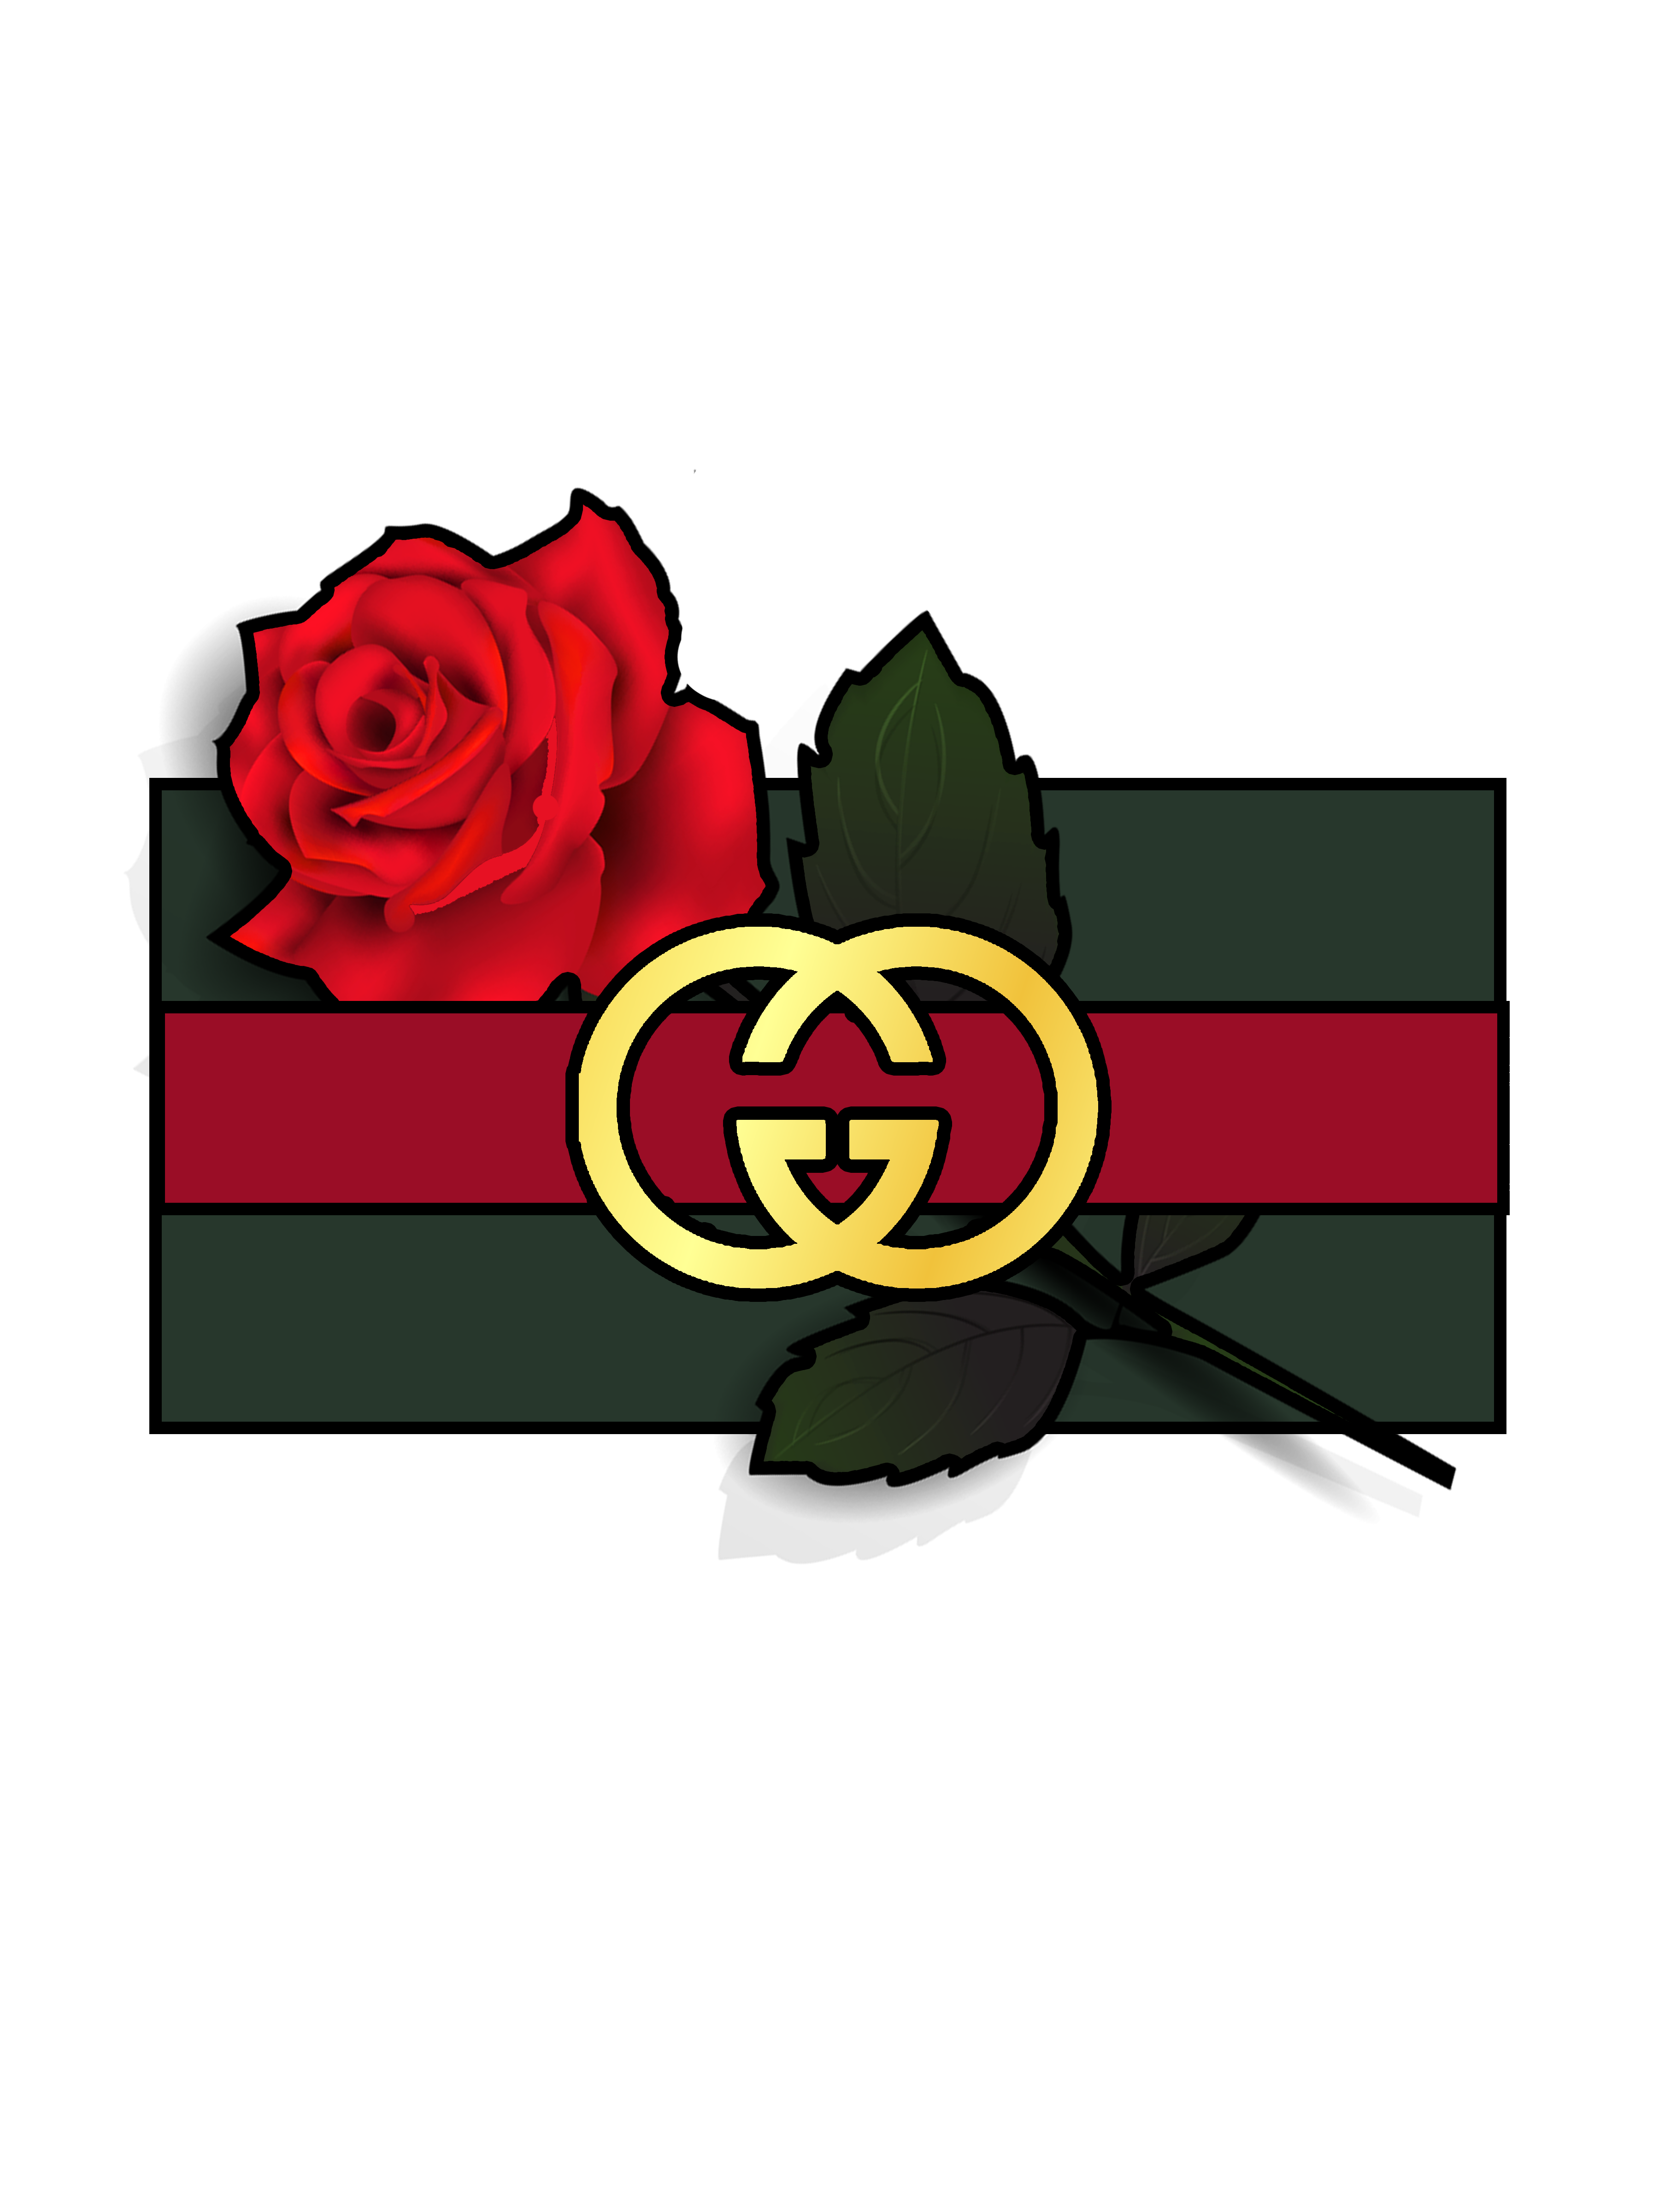 Gucci flower png. Little logo i made